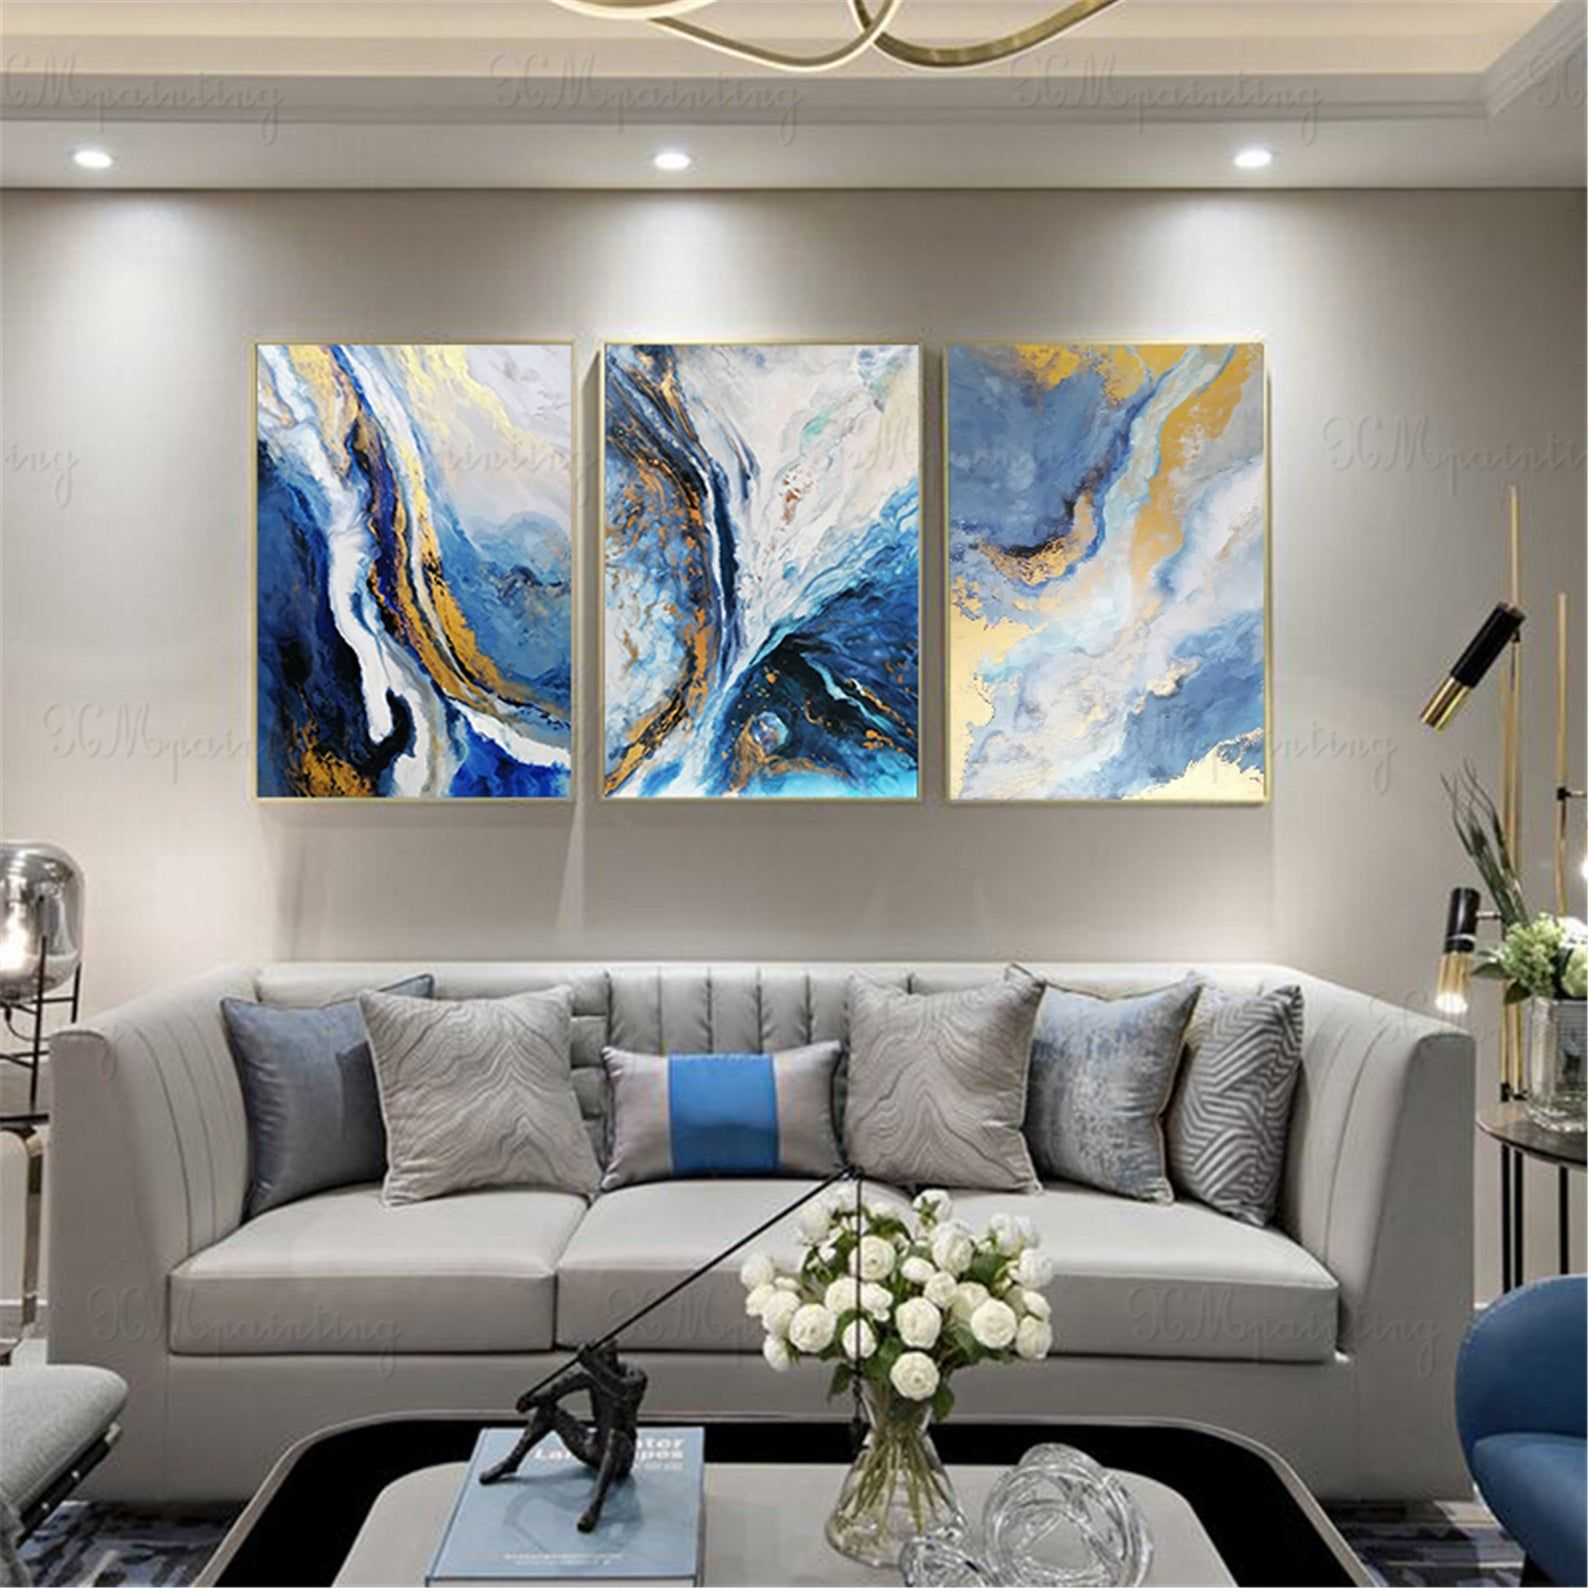 3 Pieces Framed Gold Art Abstract Painting Canvas Wall Art Picture For Living Room Wall Decor Bedroom Home Decor Acrylic Navy Blue Landscape Abstrakte Malerei Leinwand Für Wohnzimmer Bilder Wohnzimmer